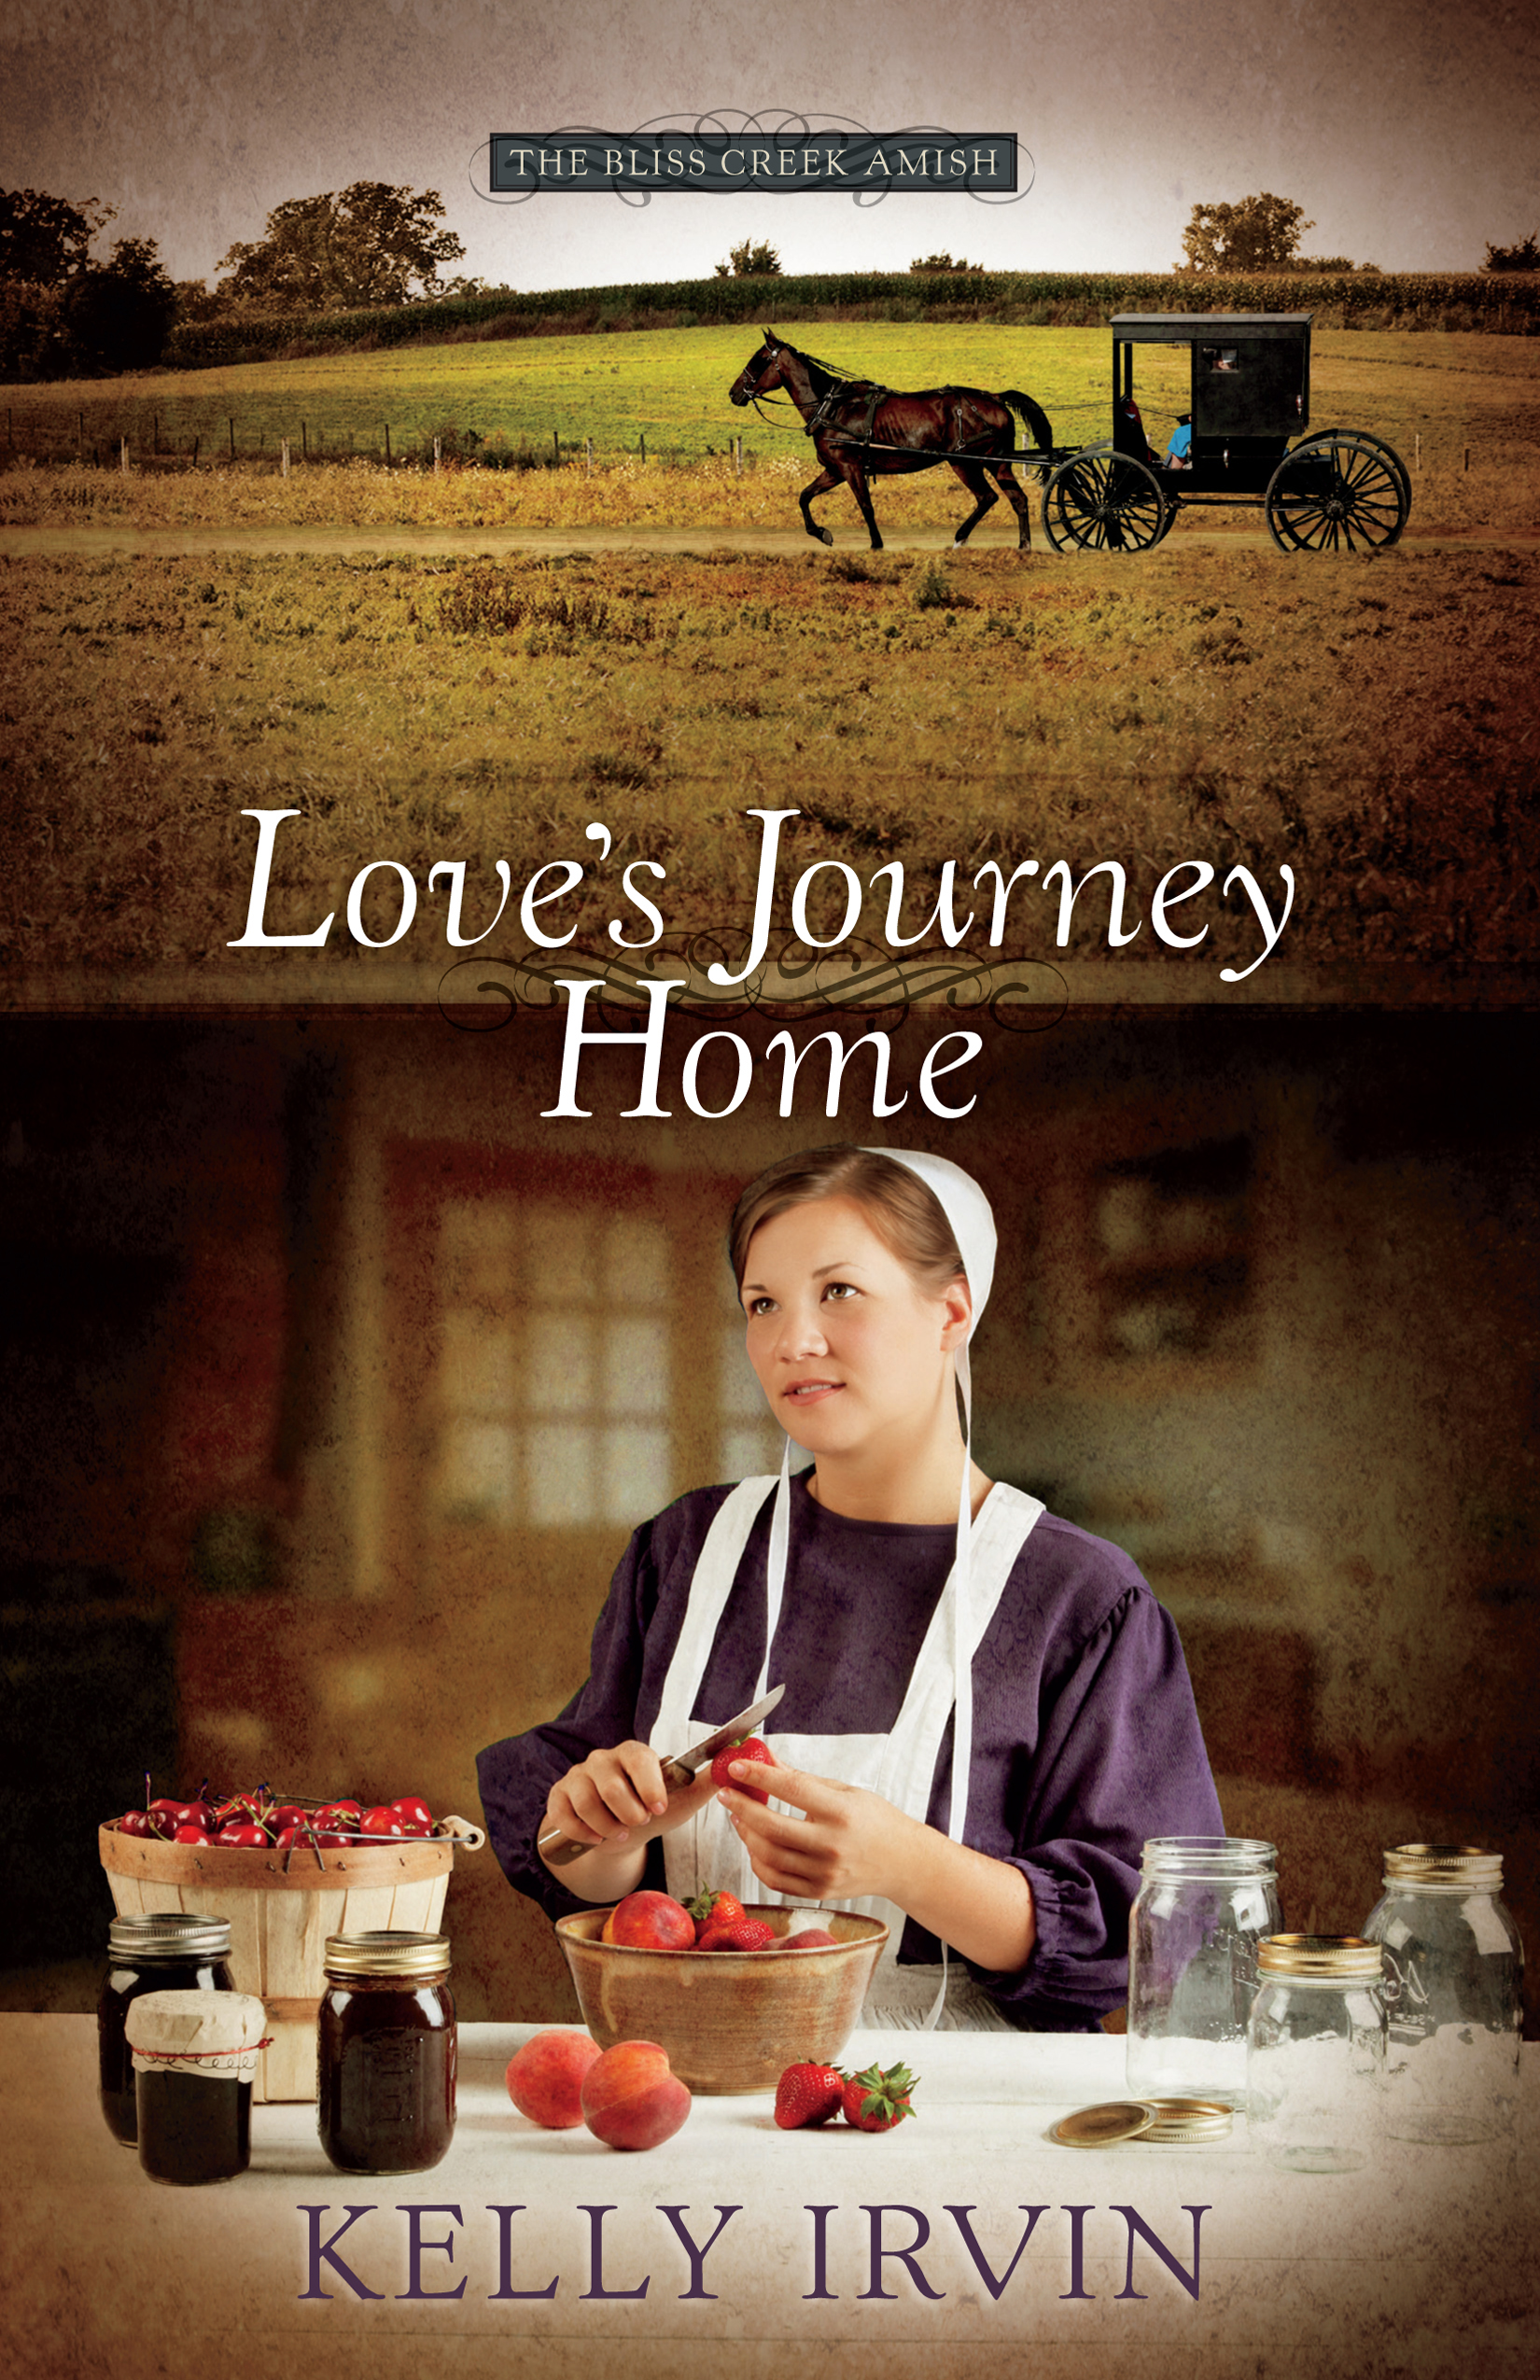 Love's Journey Home